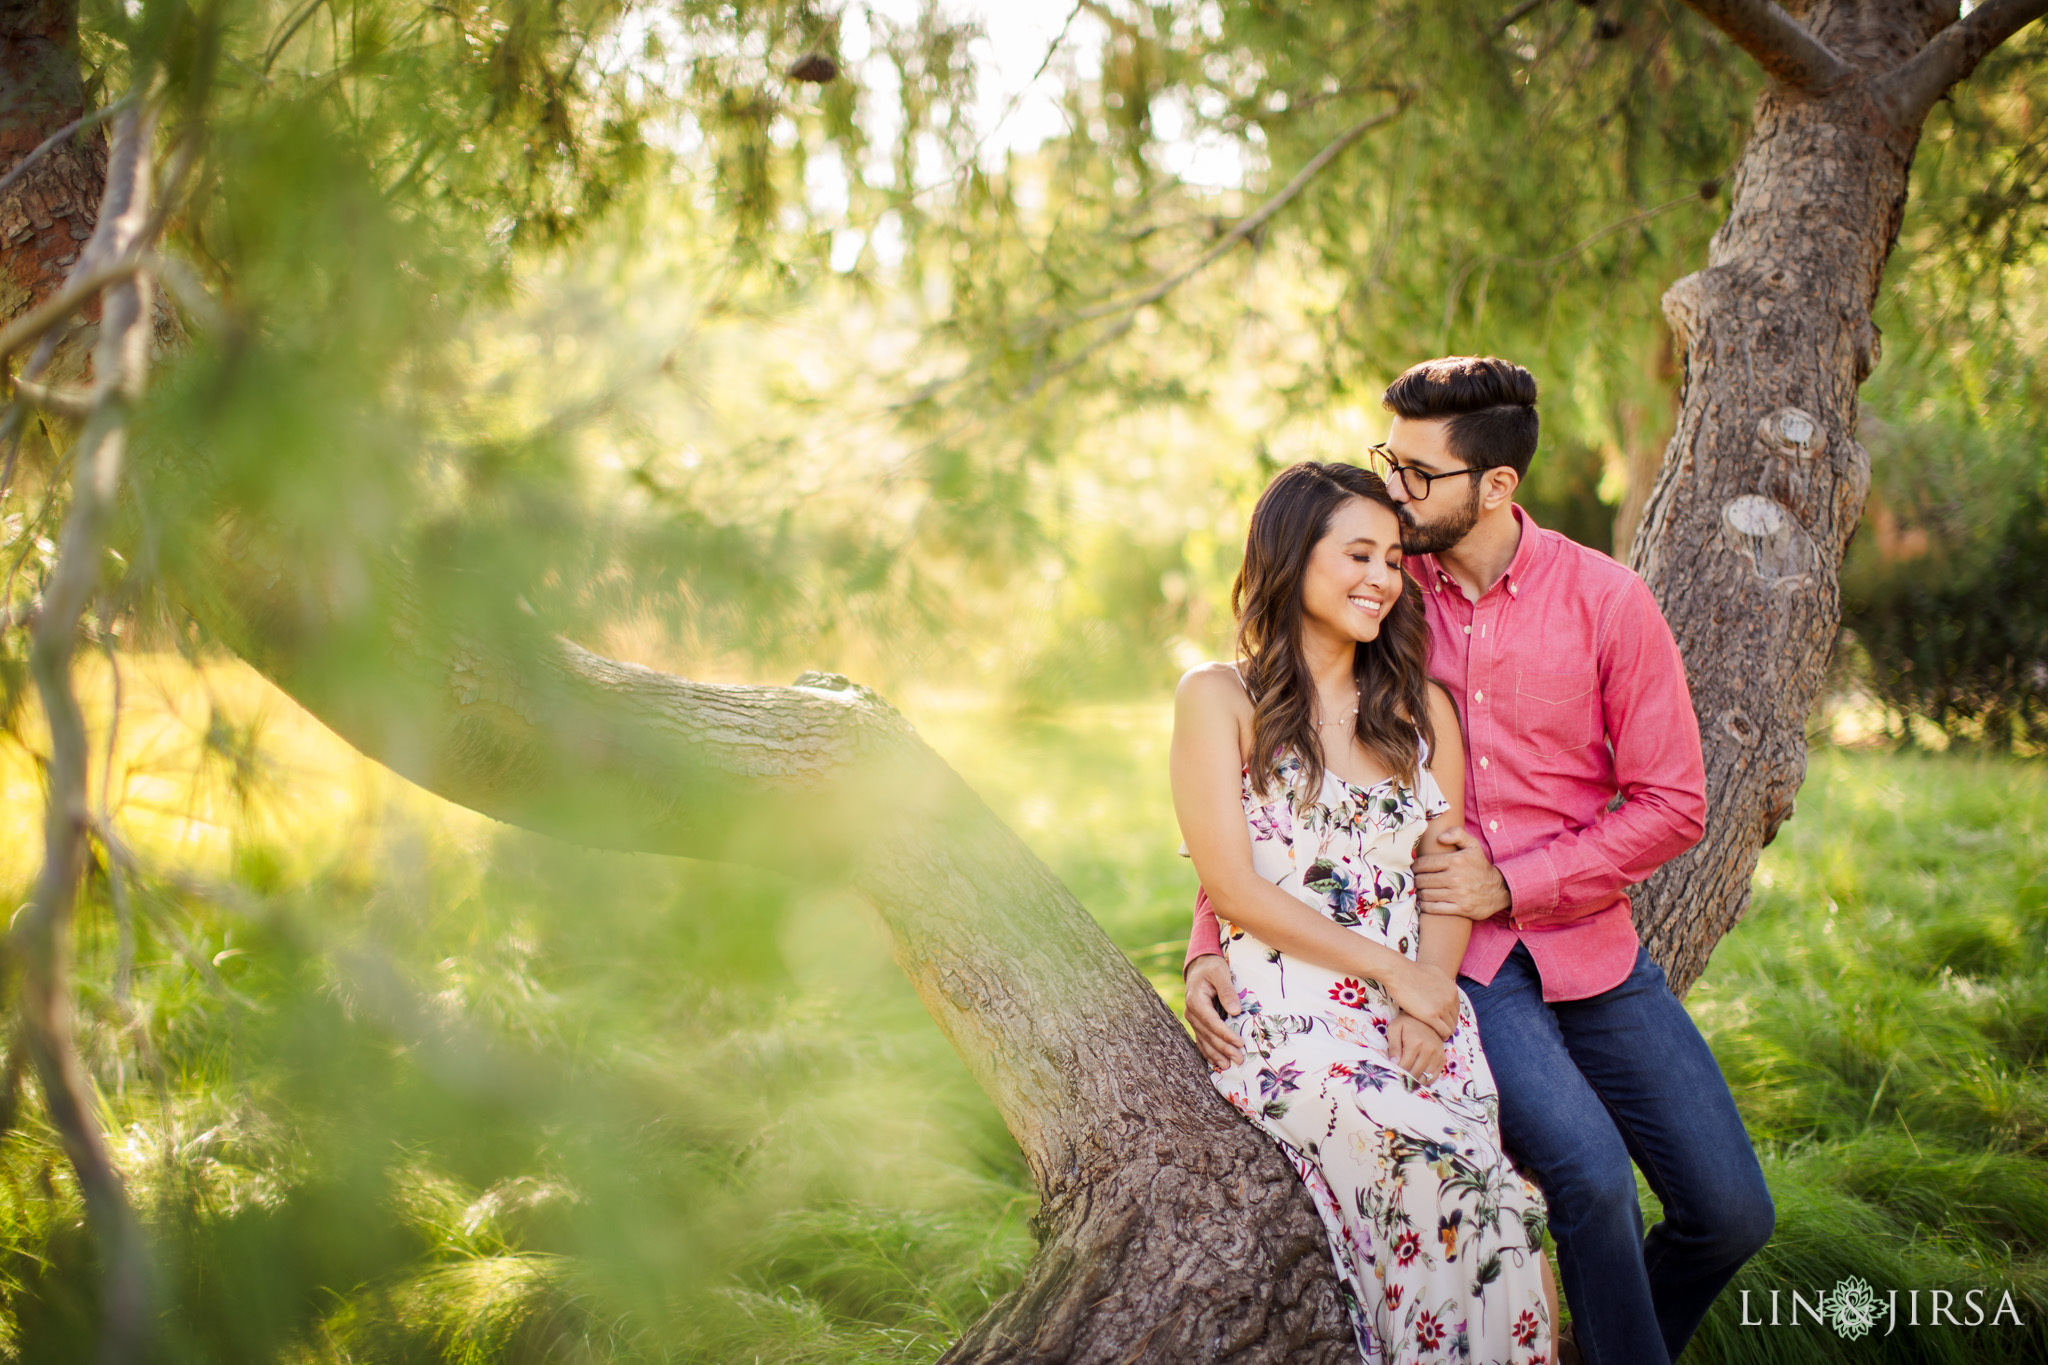 005 jeffrey open space engagement photography